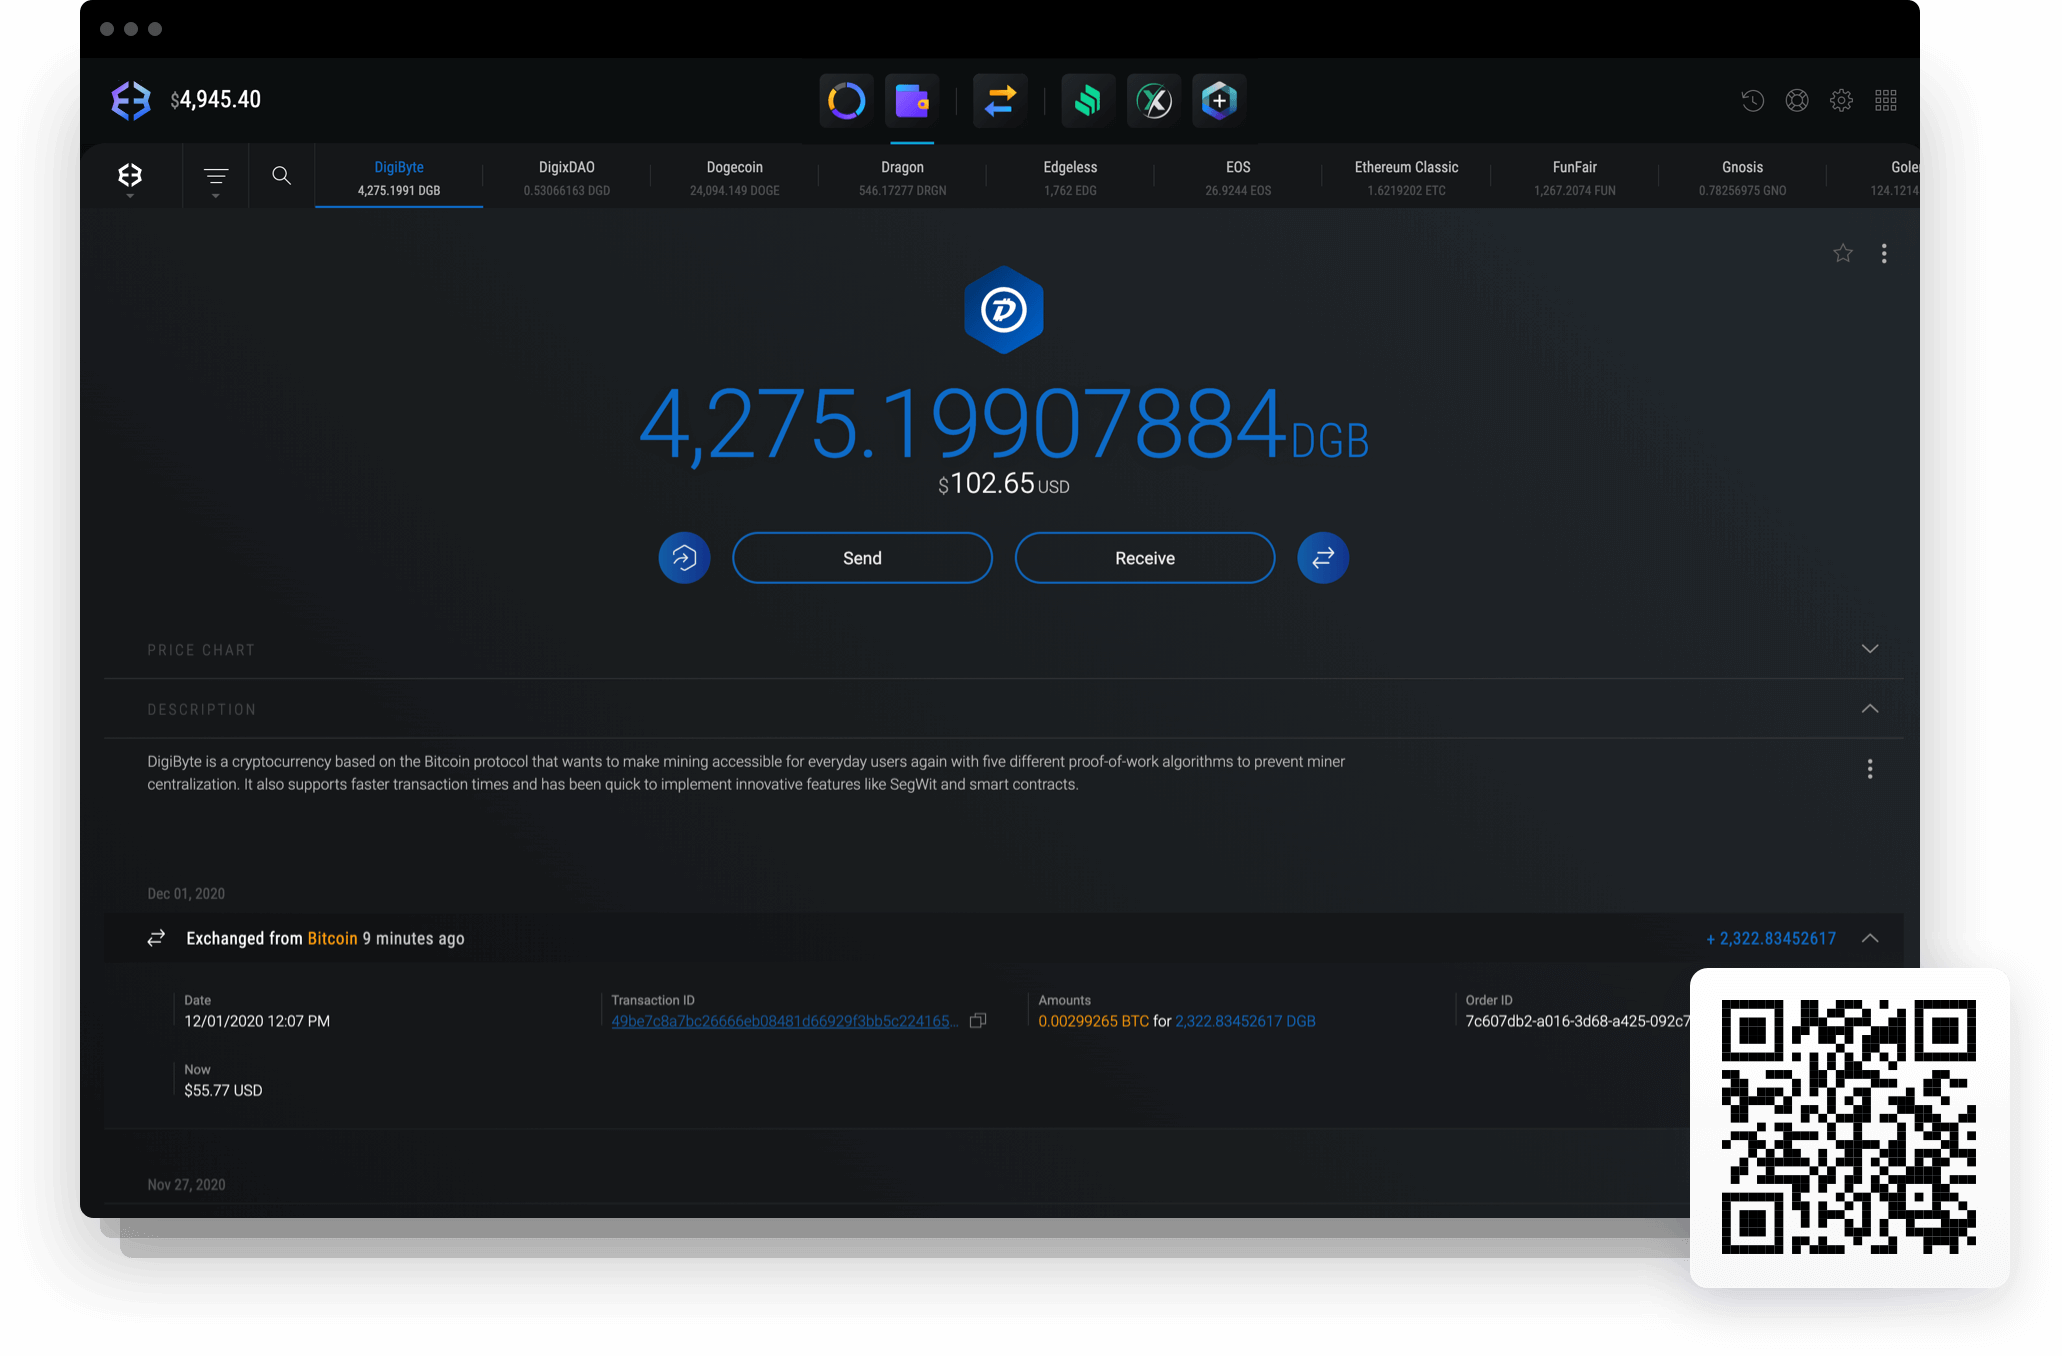 Send and receive DigiByte with Exodus DigiByte wallet